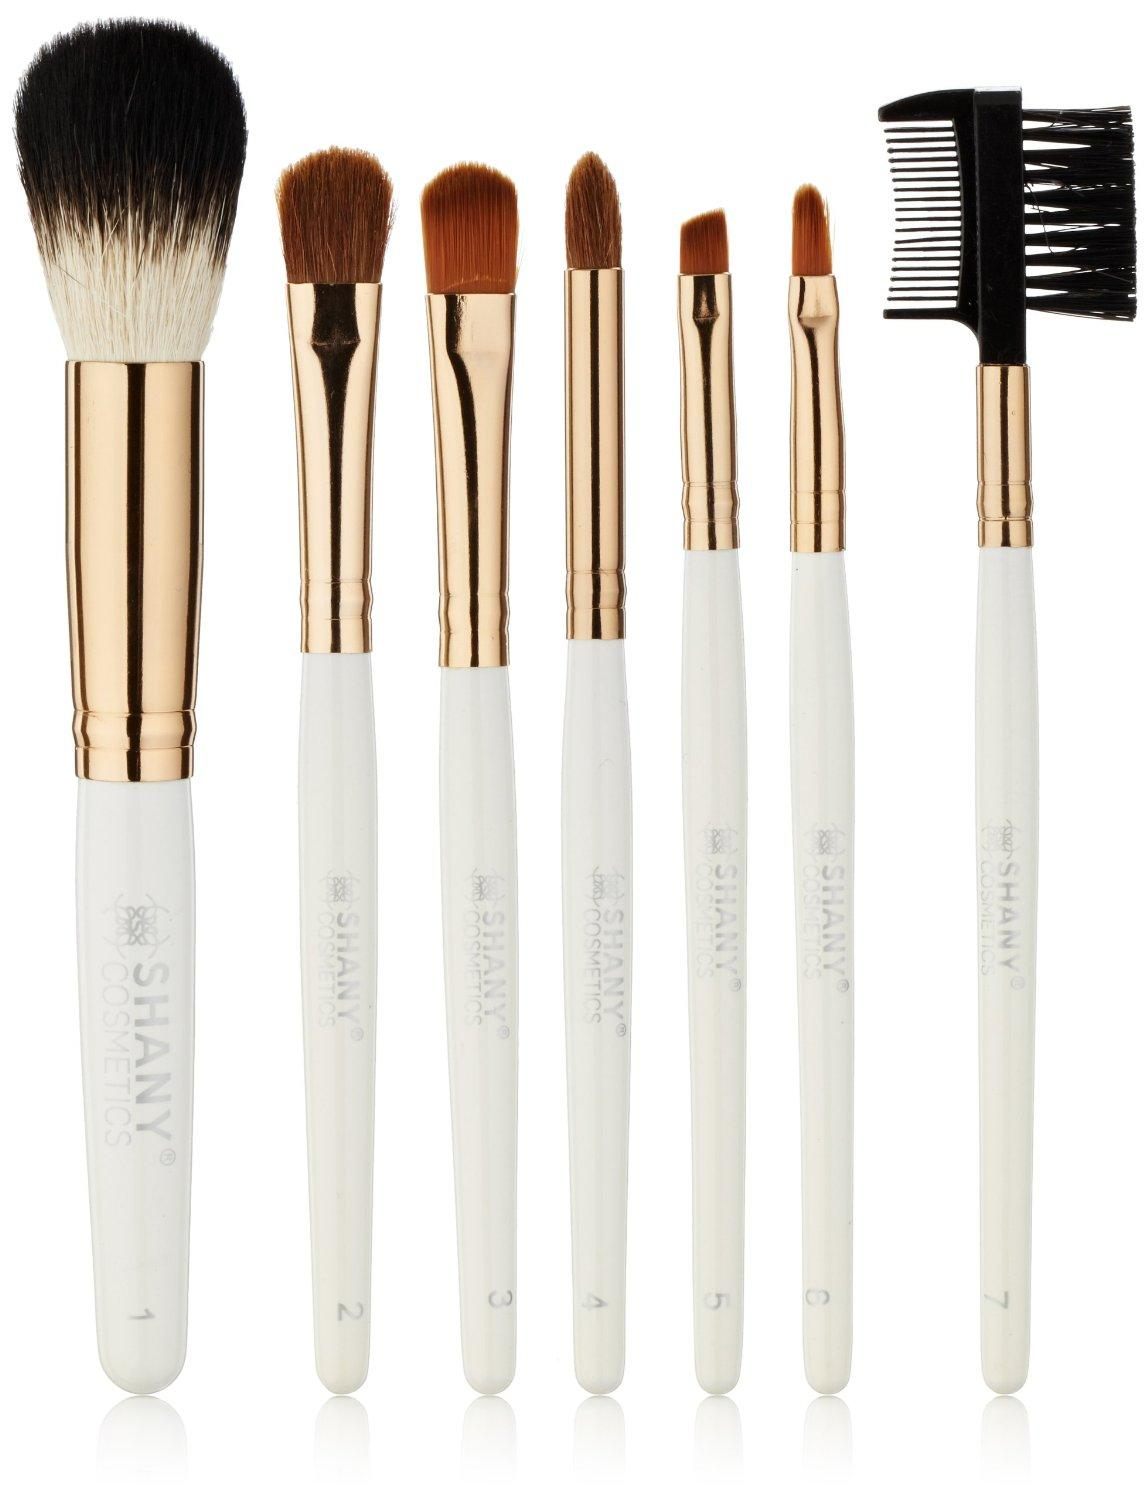 Real Techniques Brushes Sigma Brushes Mascara Nyx Beauty